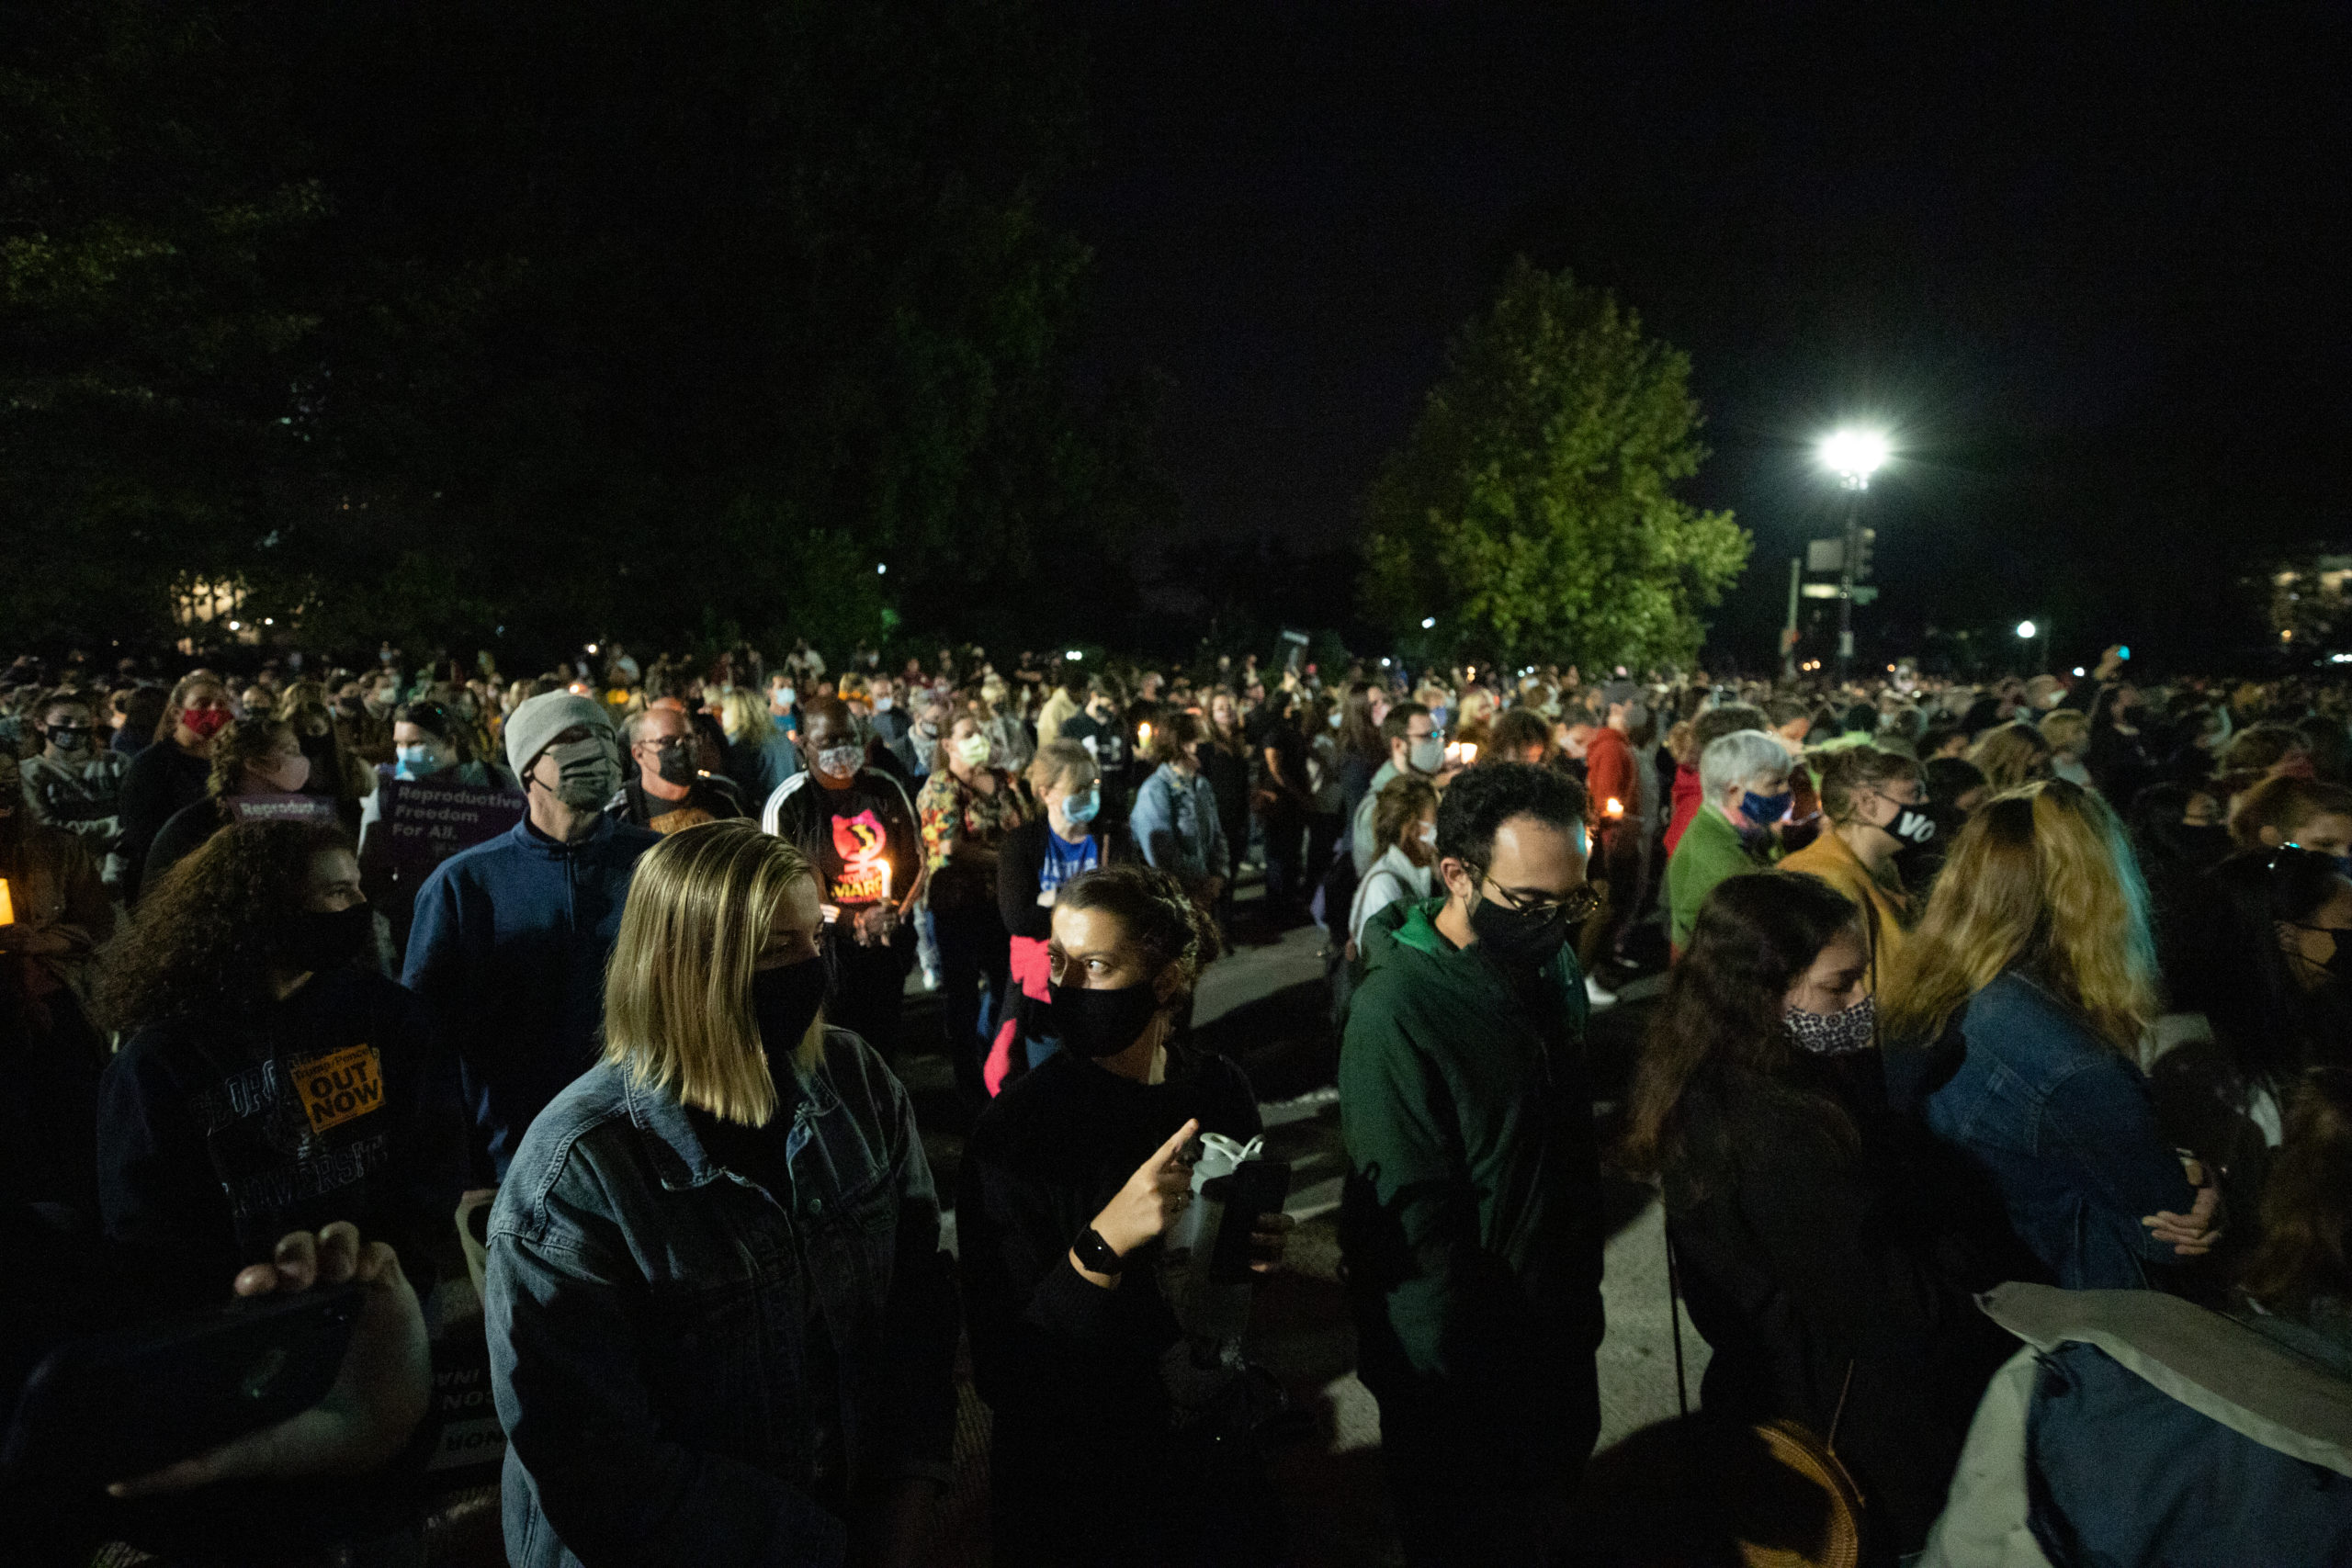 Hundreds attend a memorial honoring the late Justice Ruth Bader Ginsburg on Sept. 19, 2020. (Photo: Kaylee Greenlee / The DCNF)